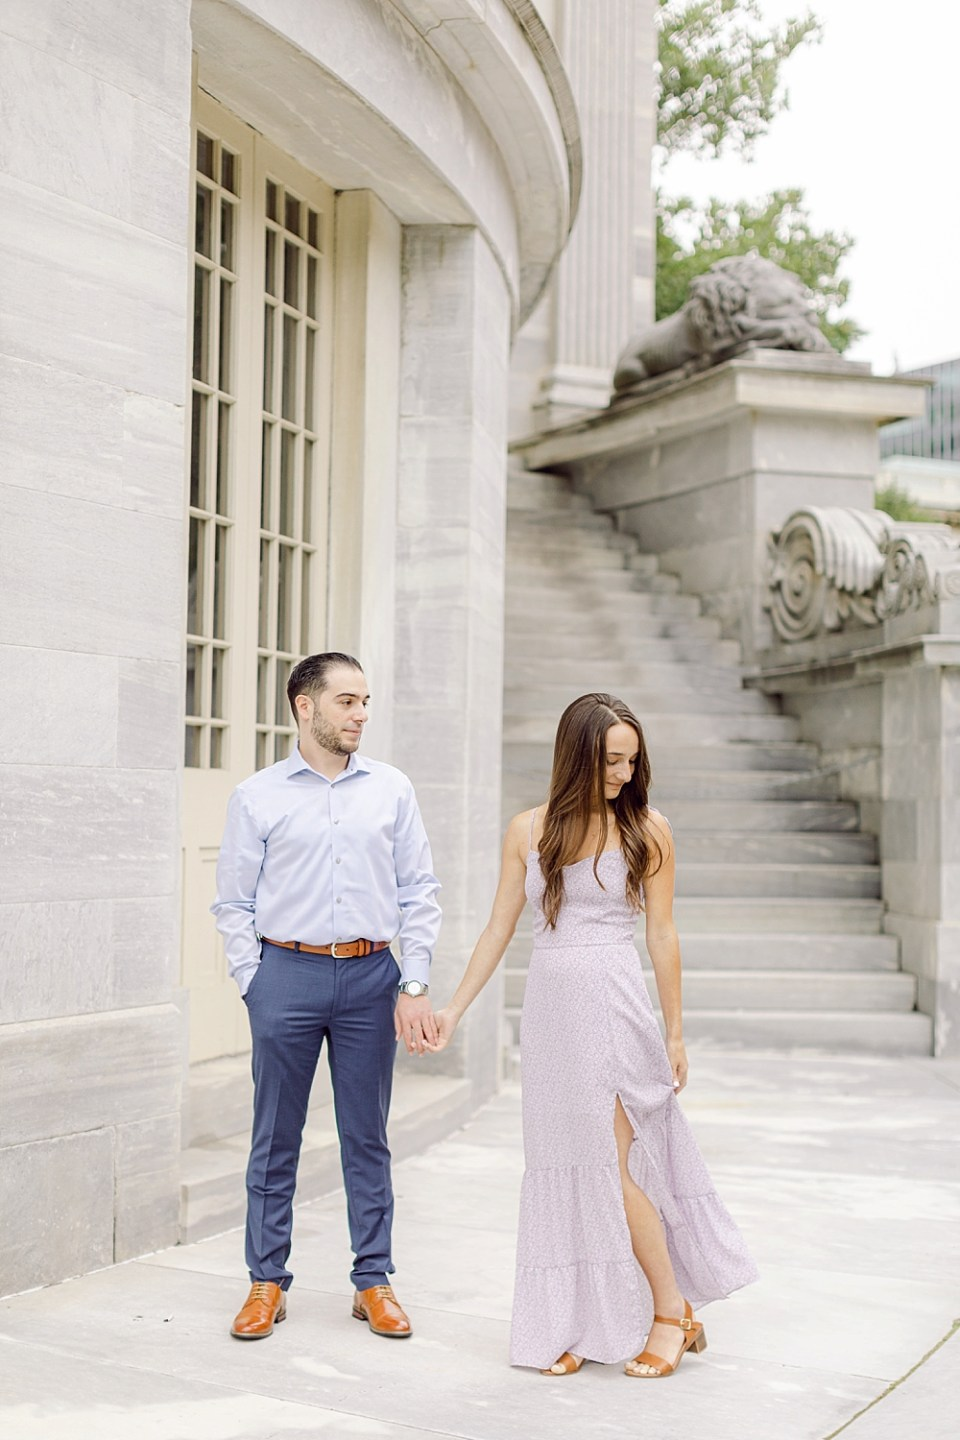 Engagement Photos in Old City Philadelphia at Merchant's Exchange Building